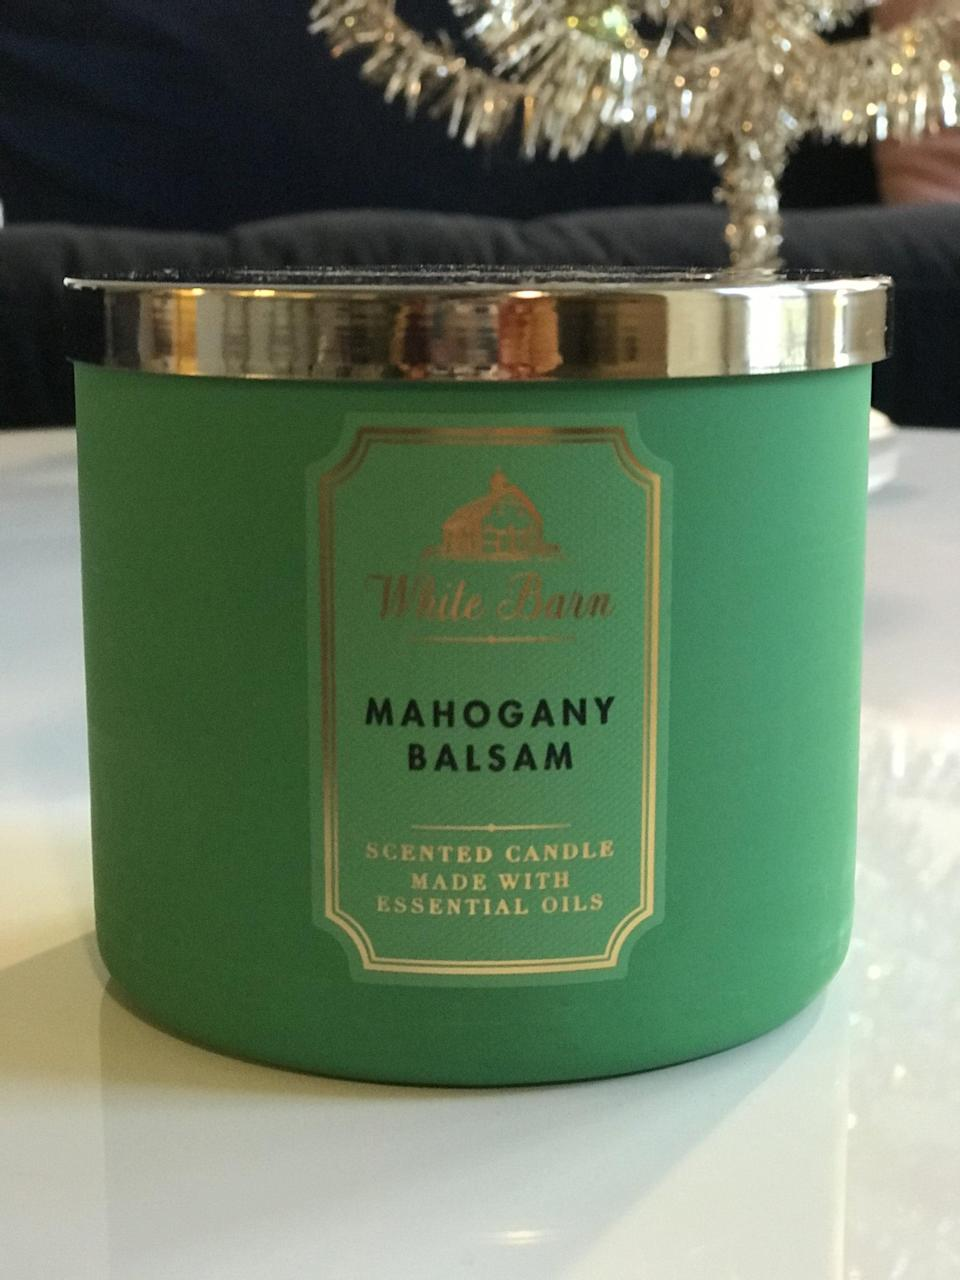 <p><span>Mahogany Balsam 3-Wick Candle</span> ($15, originally $25)</p> <p><strong>What It Smells Like:</strong> This smells like luxury. I don't know if it's the hint of Juniper Berry or the wood notes, it just smells like it costs a lot of money.</p>